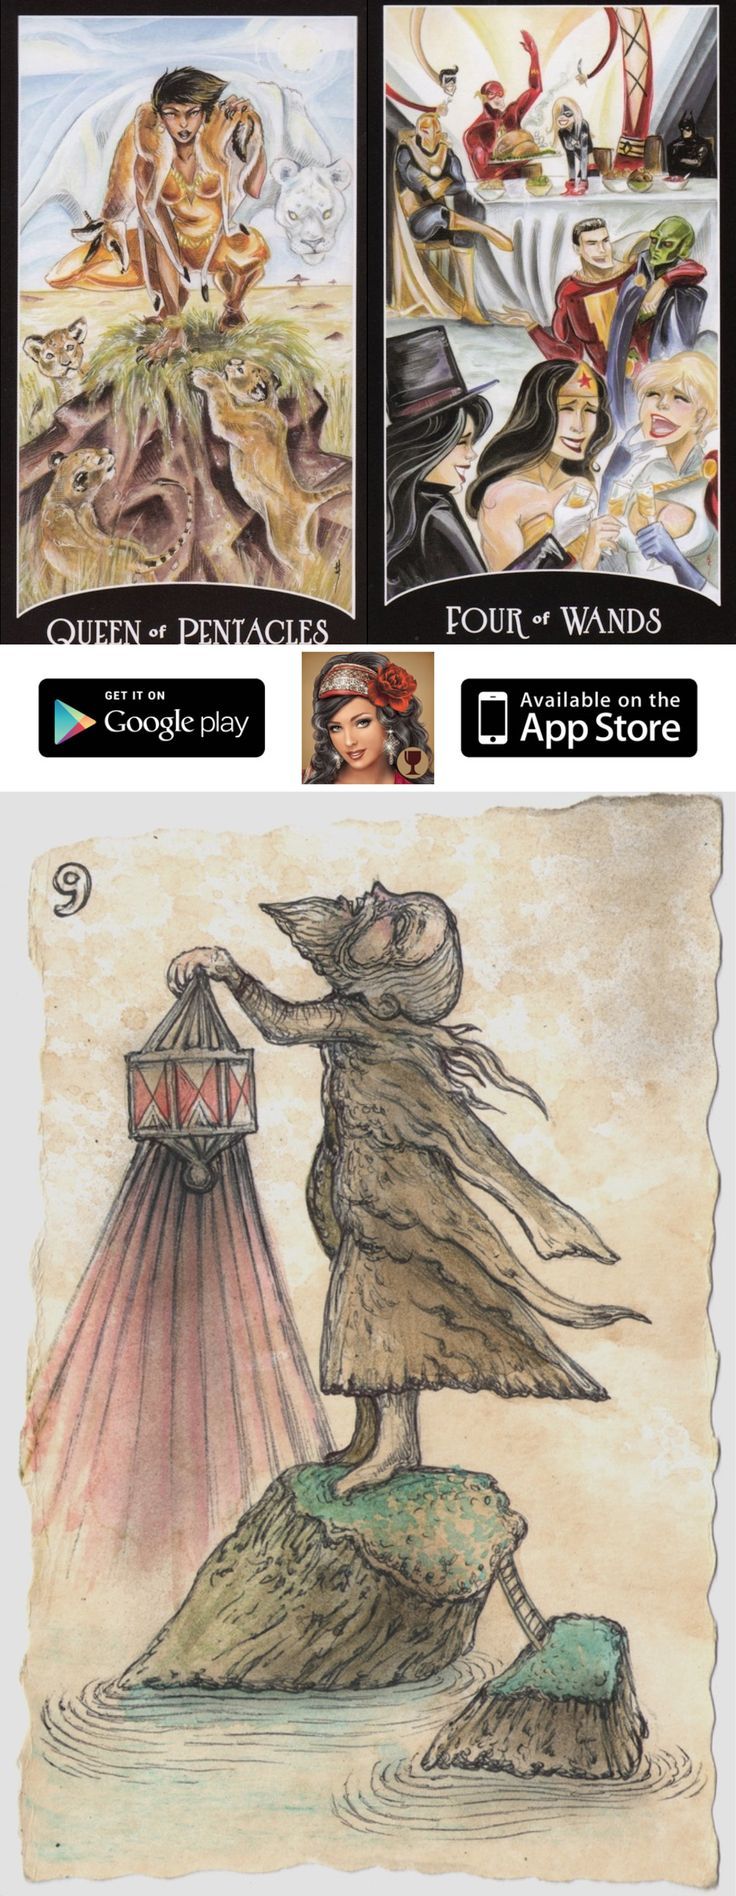 ✯ Install this free mobile application on your iOS and Android device and enjoy. instant tarot, tarot cards and book sets and margaret wells tarot, tarot card suits and tarot psychic. New tarot reading for beginners and fortune telling cards. #fool #theworld #tarotspread #iosapp #tarotart #tattoo